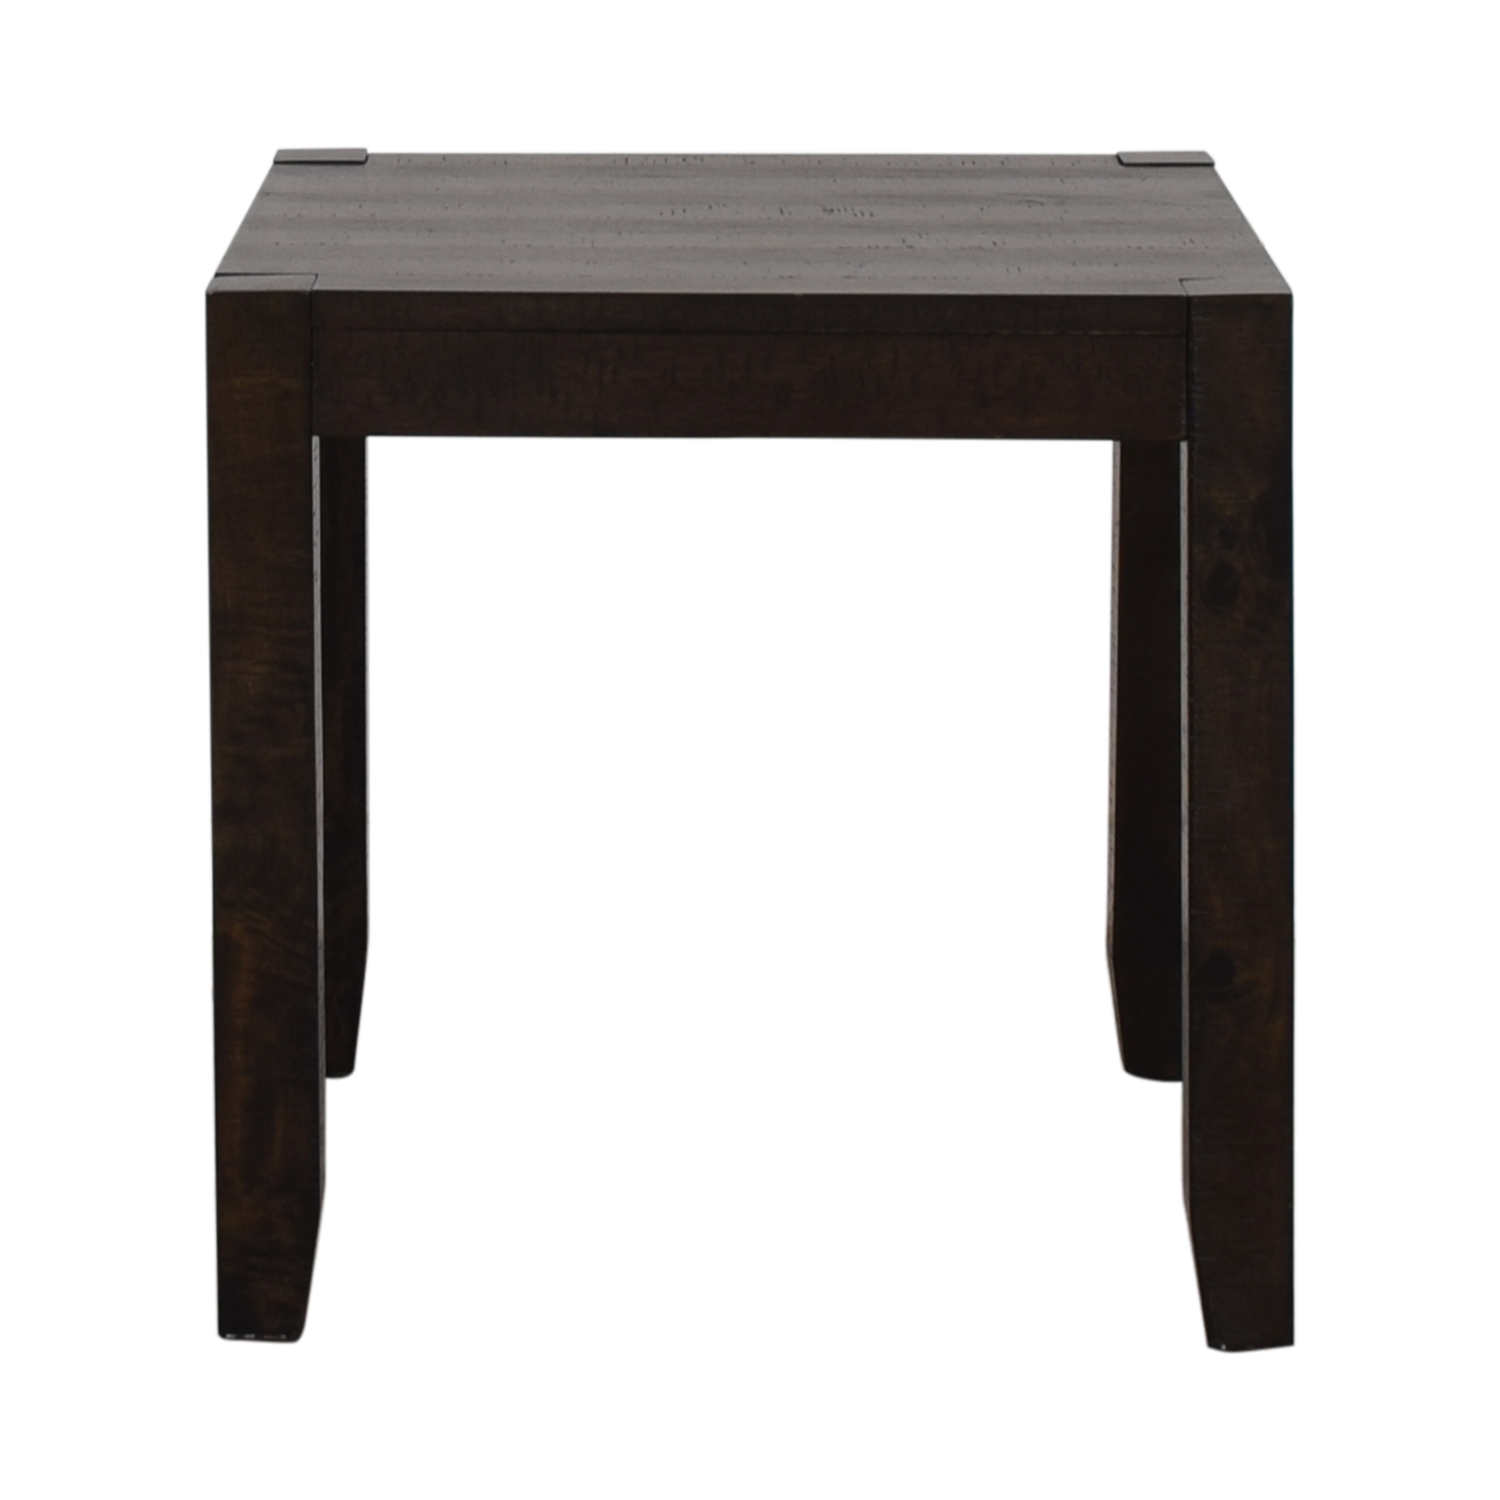 Bob's Discount Furniture Side Table / Tables